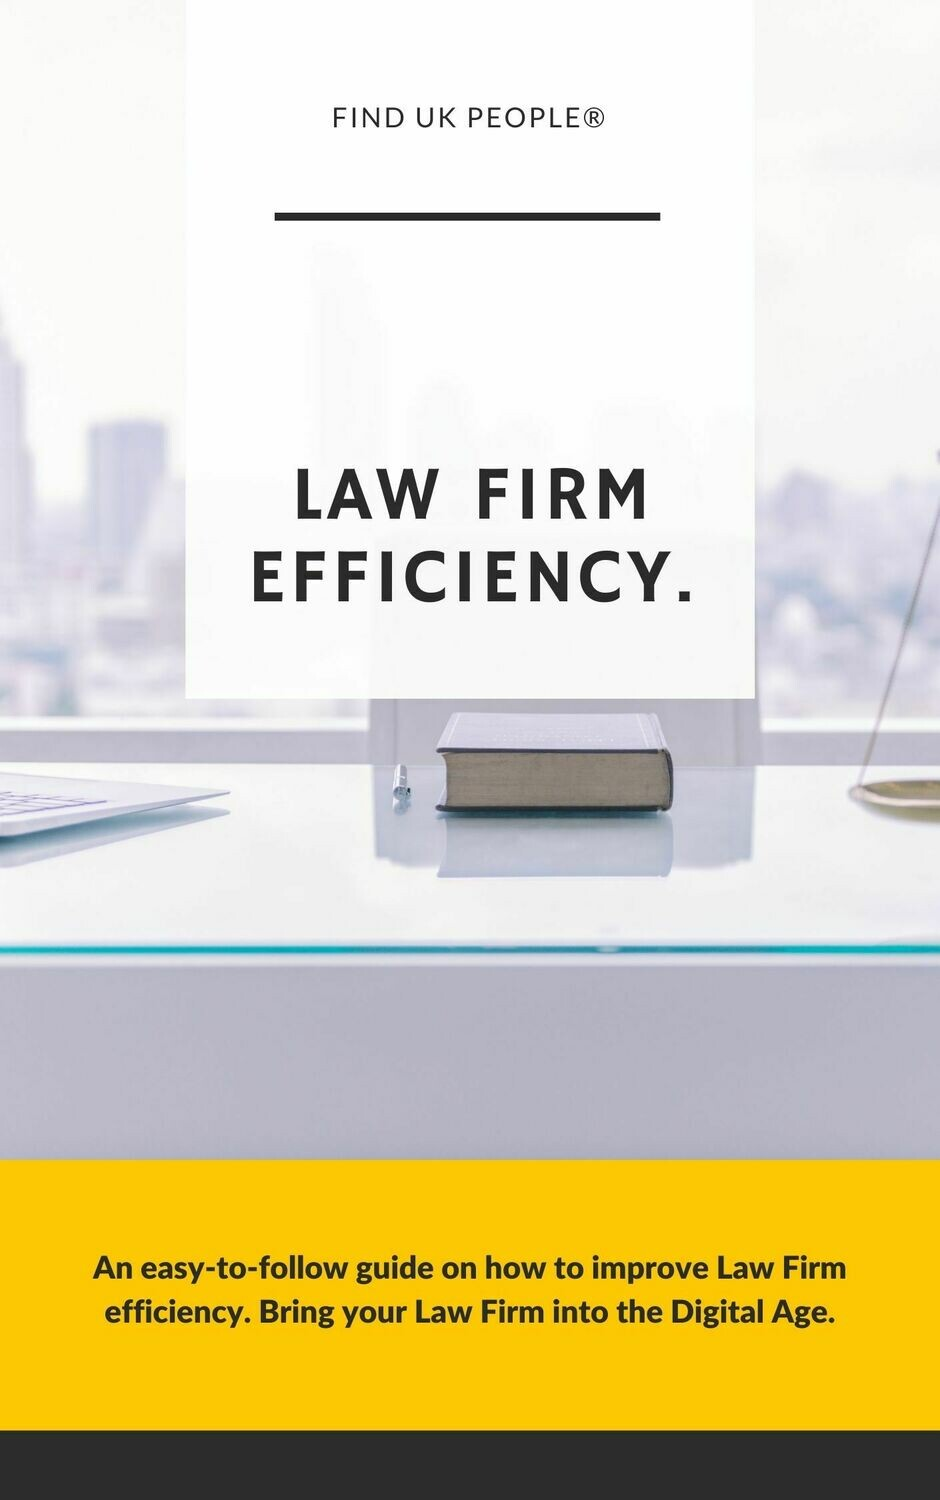 Handy tips for running your Law Firm